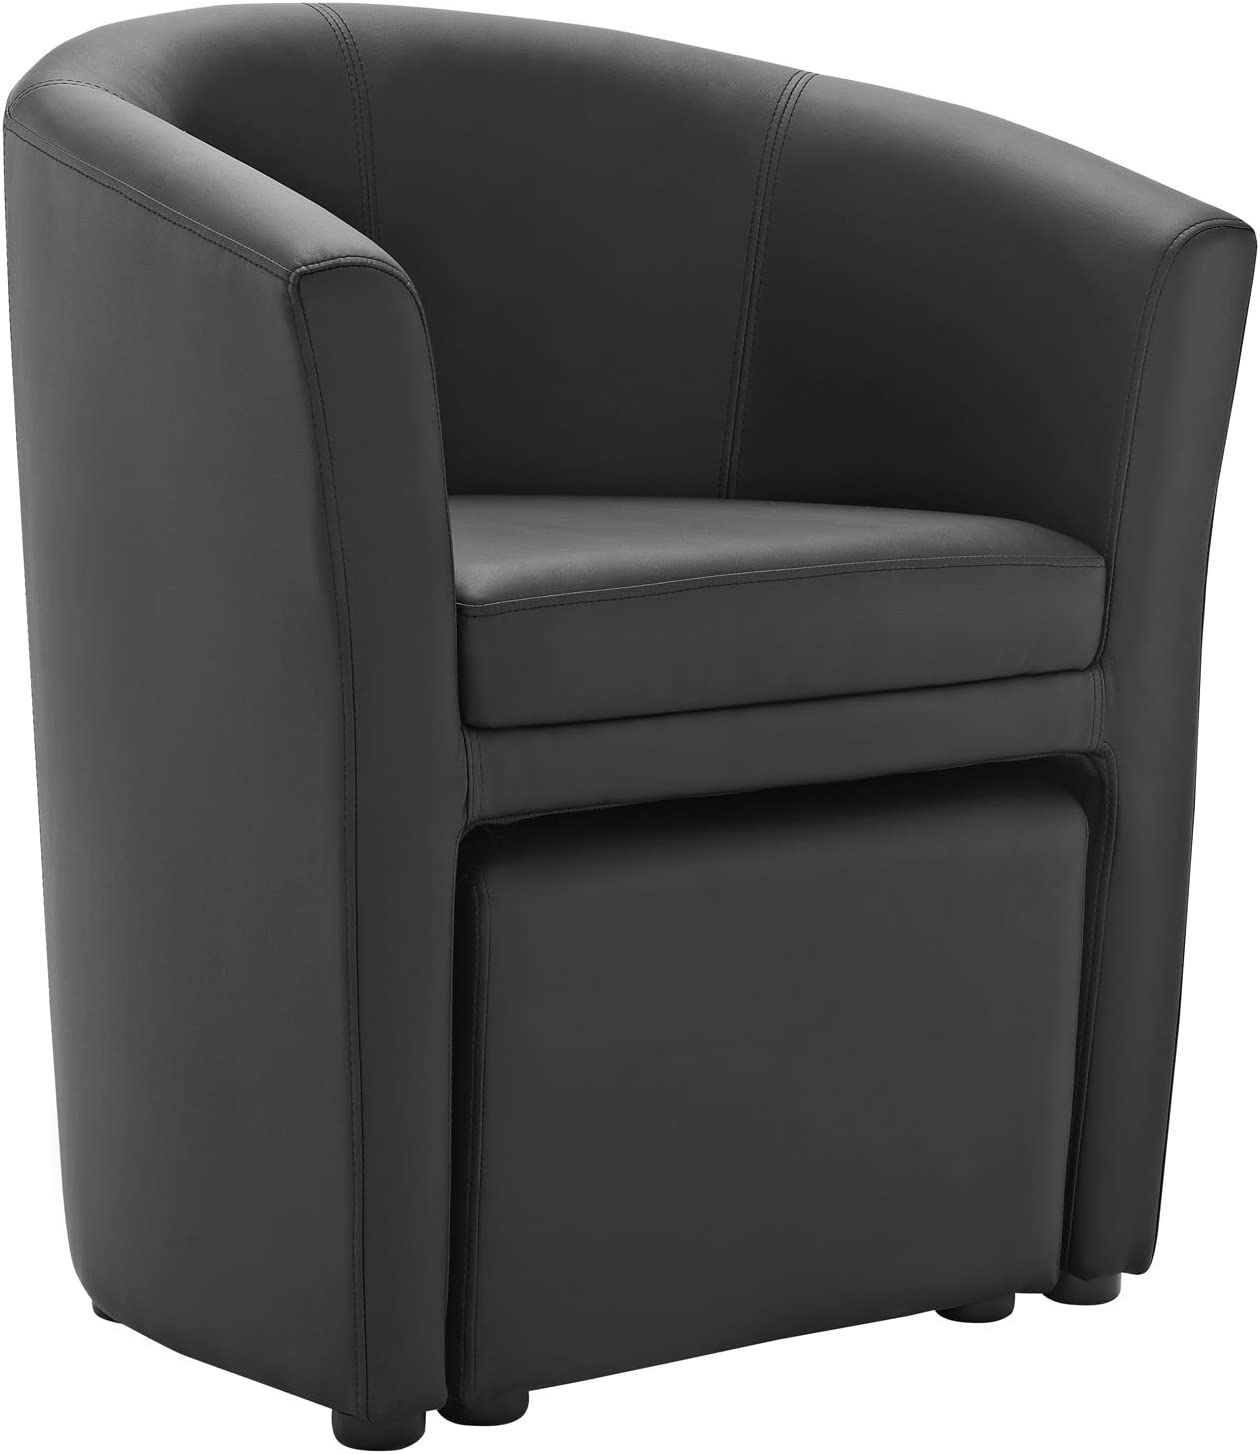 Modway Divulge Faux Leather Armchair and Ottoman Set in Black